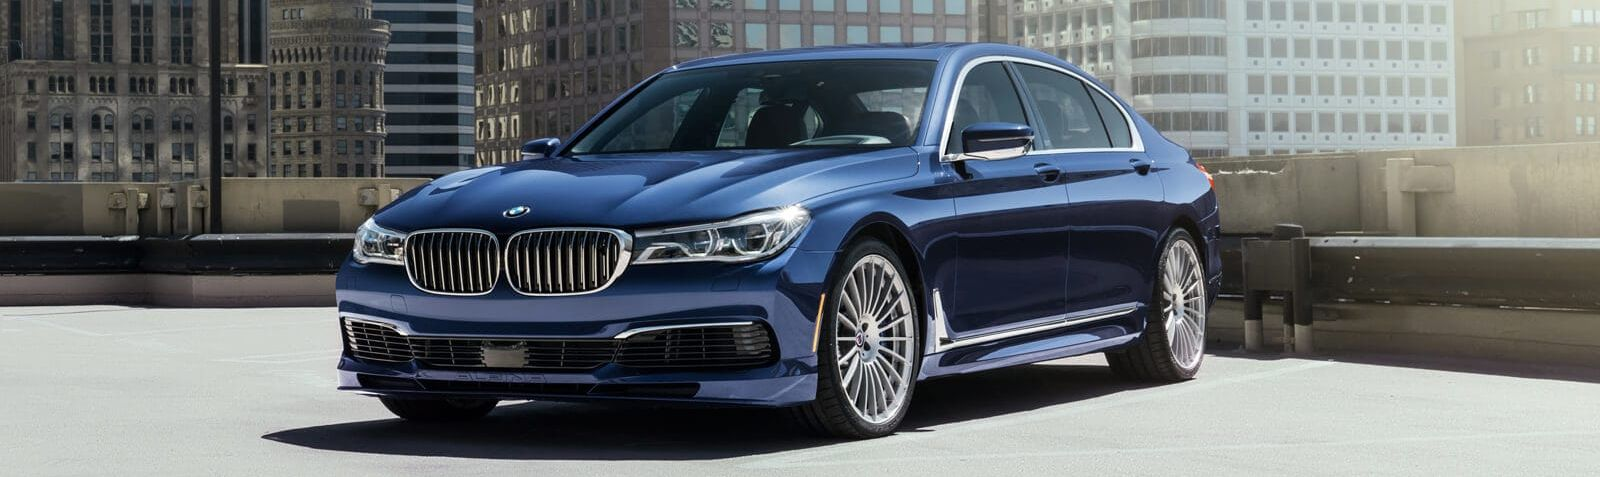 2019 Bmw 7 Series Financing Near Quitman Ms Bmw Of Meridian